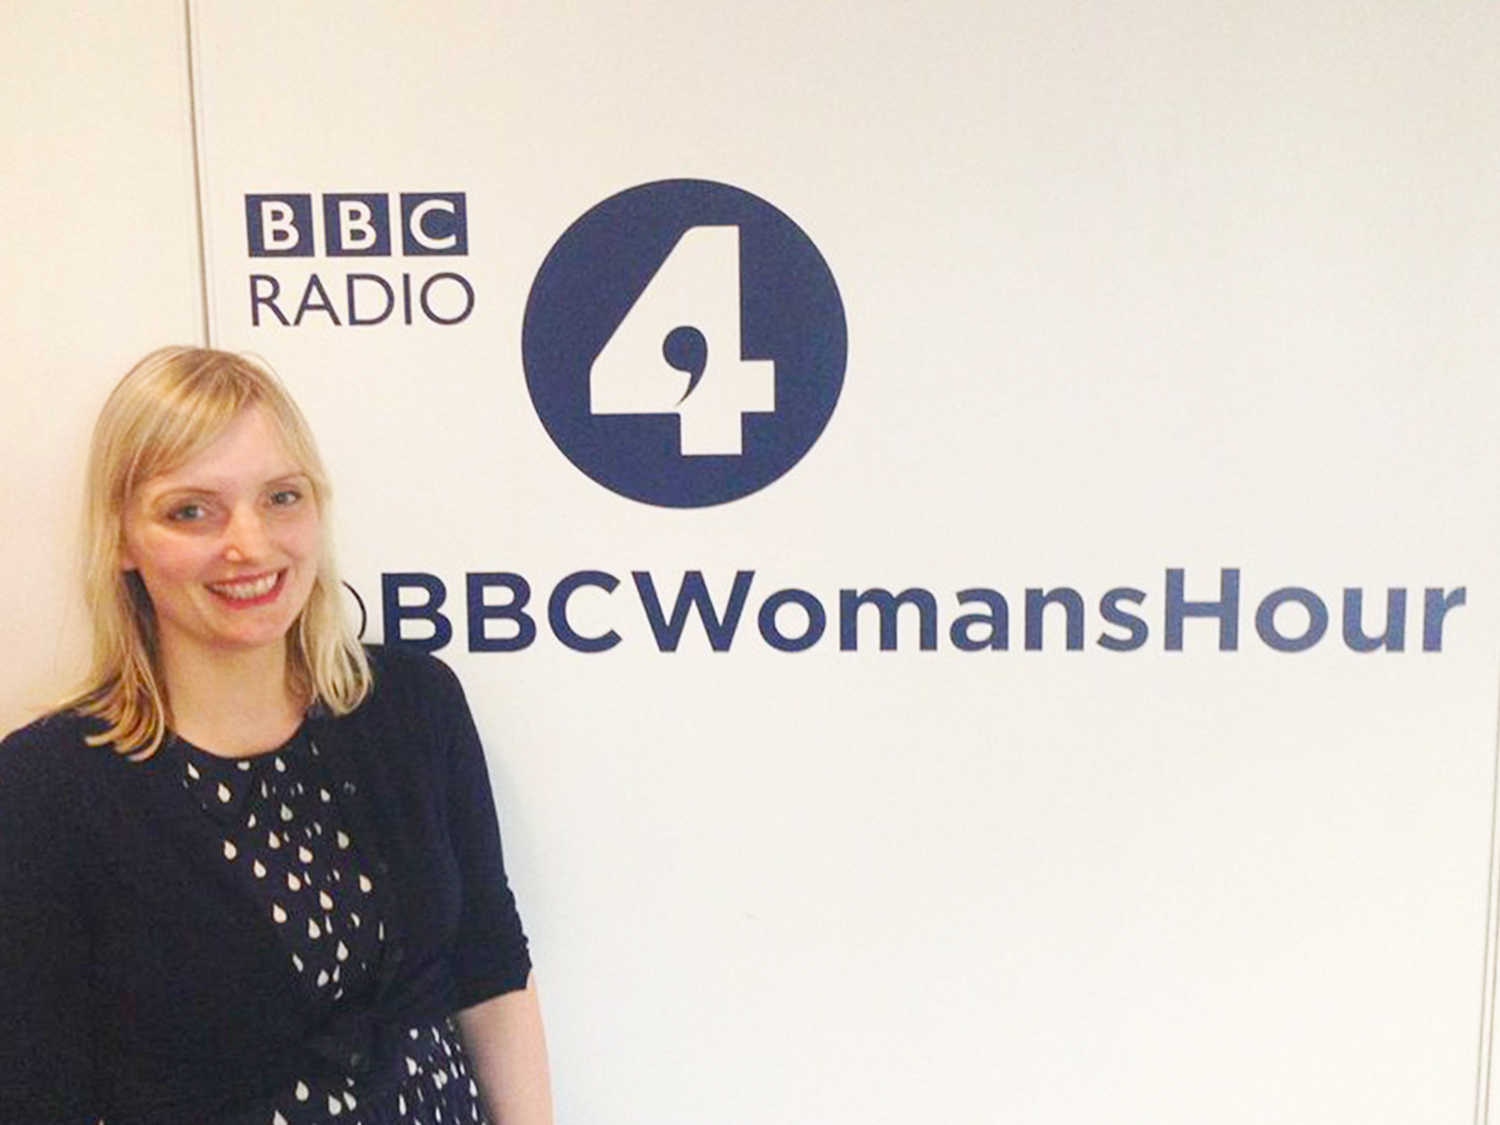 So excited to have been invited on to BBC Radio 4 Woman's Hour to talk solo travel with Jenni Murray